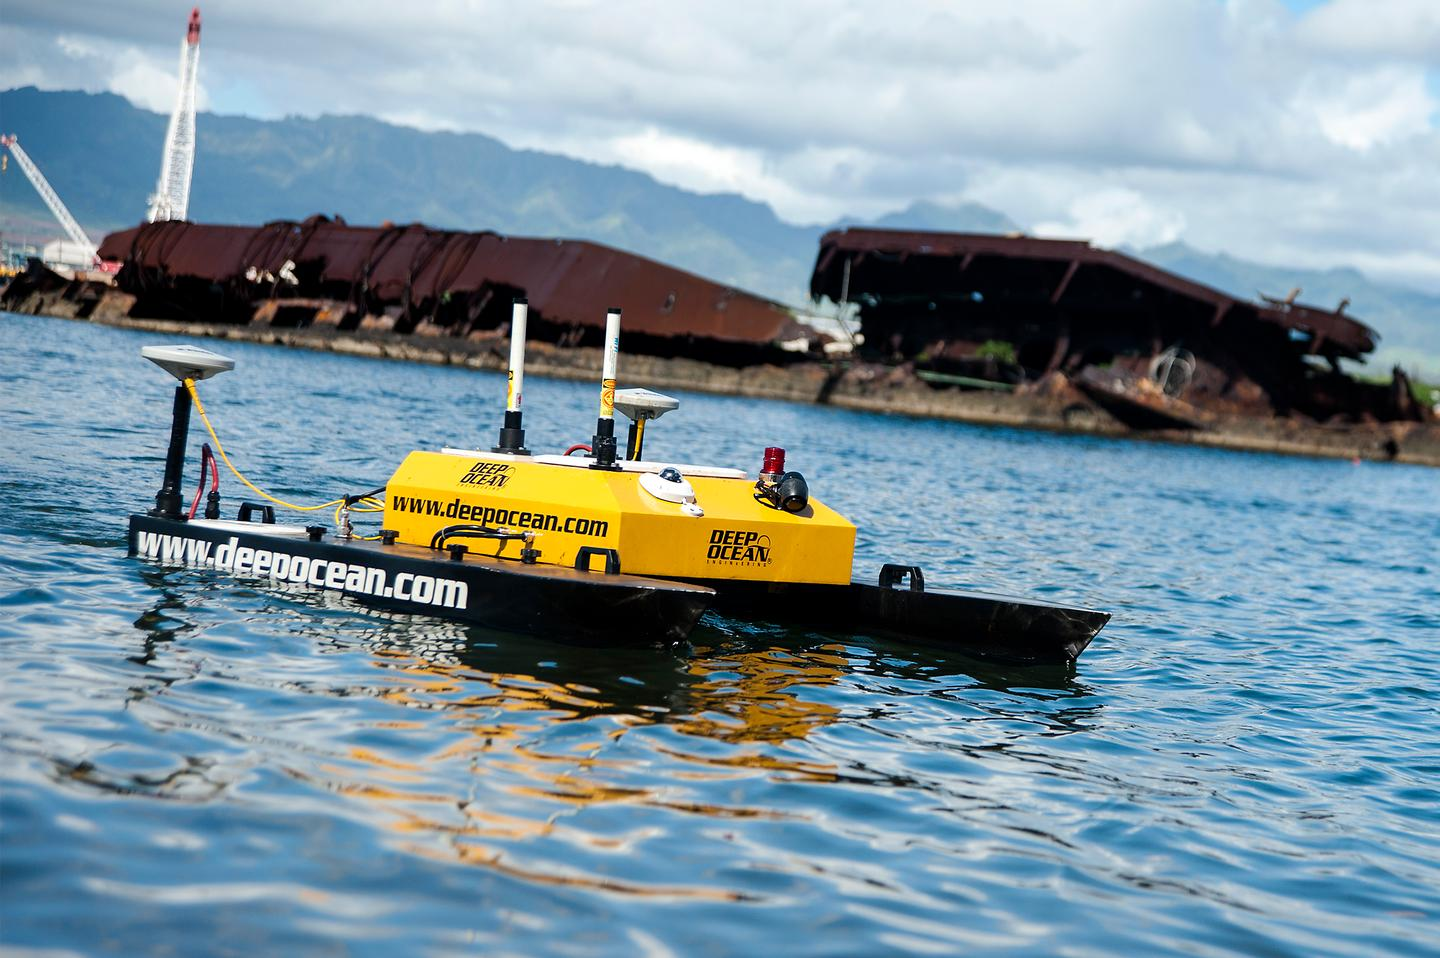 3D models created from the use of technology such as unmanned vehicles will allow officials and the National Park Service to track changes at historic sites located at Joint Base Pearl Harbor-Hickam (Photo: U.S. Navy photo by Mass Communication Specialist 3rd Class Johans Chavarro/Released)